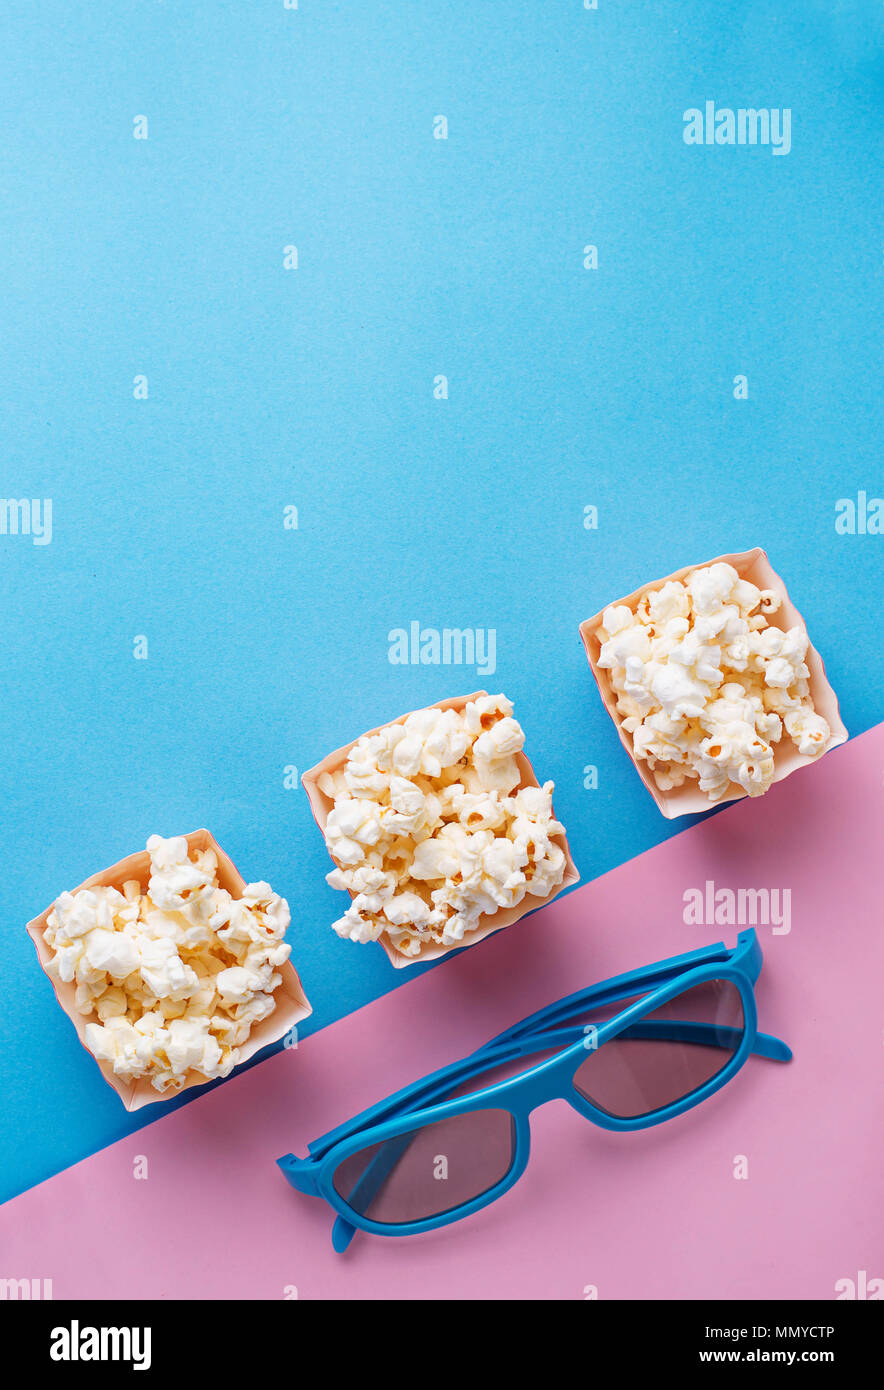 Popcorn with 3d glasses on blue background - Stock Image